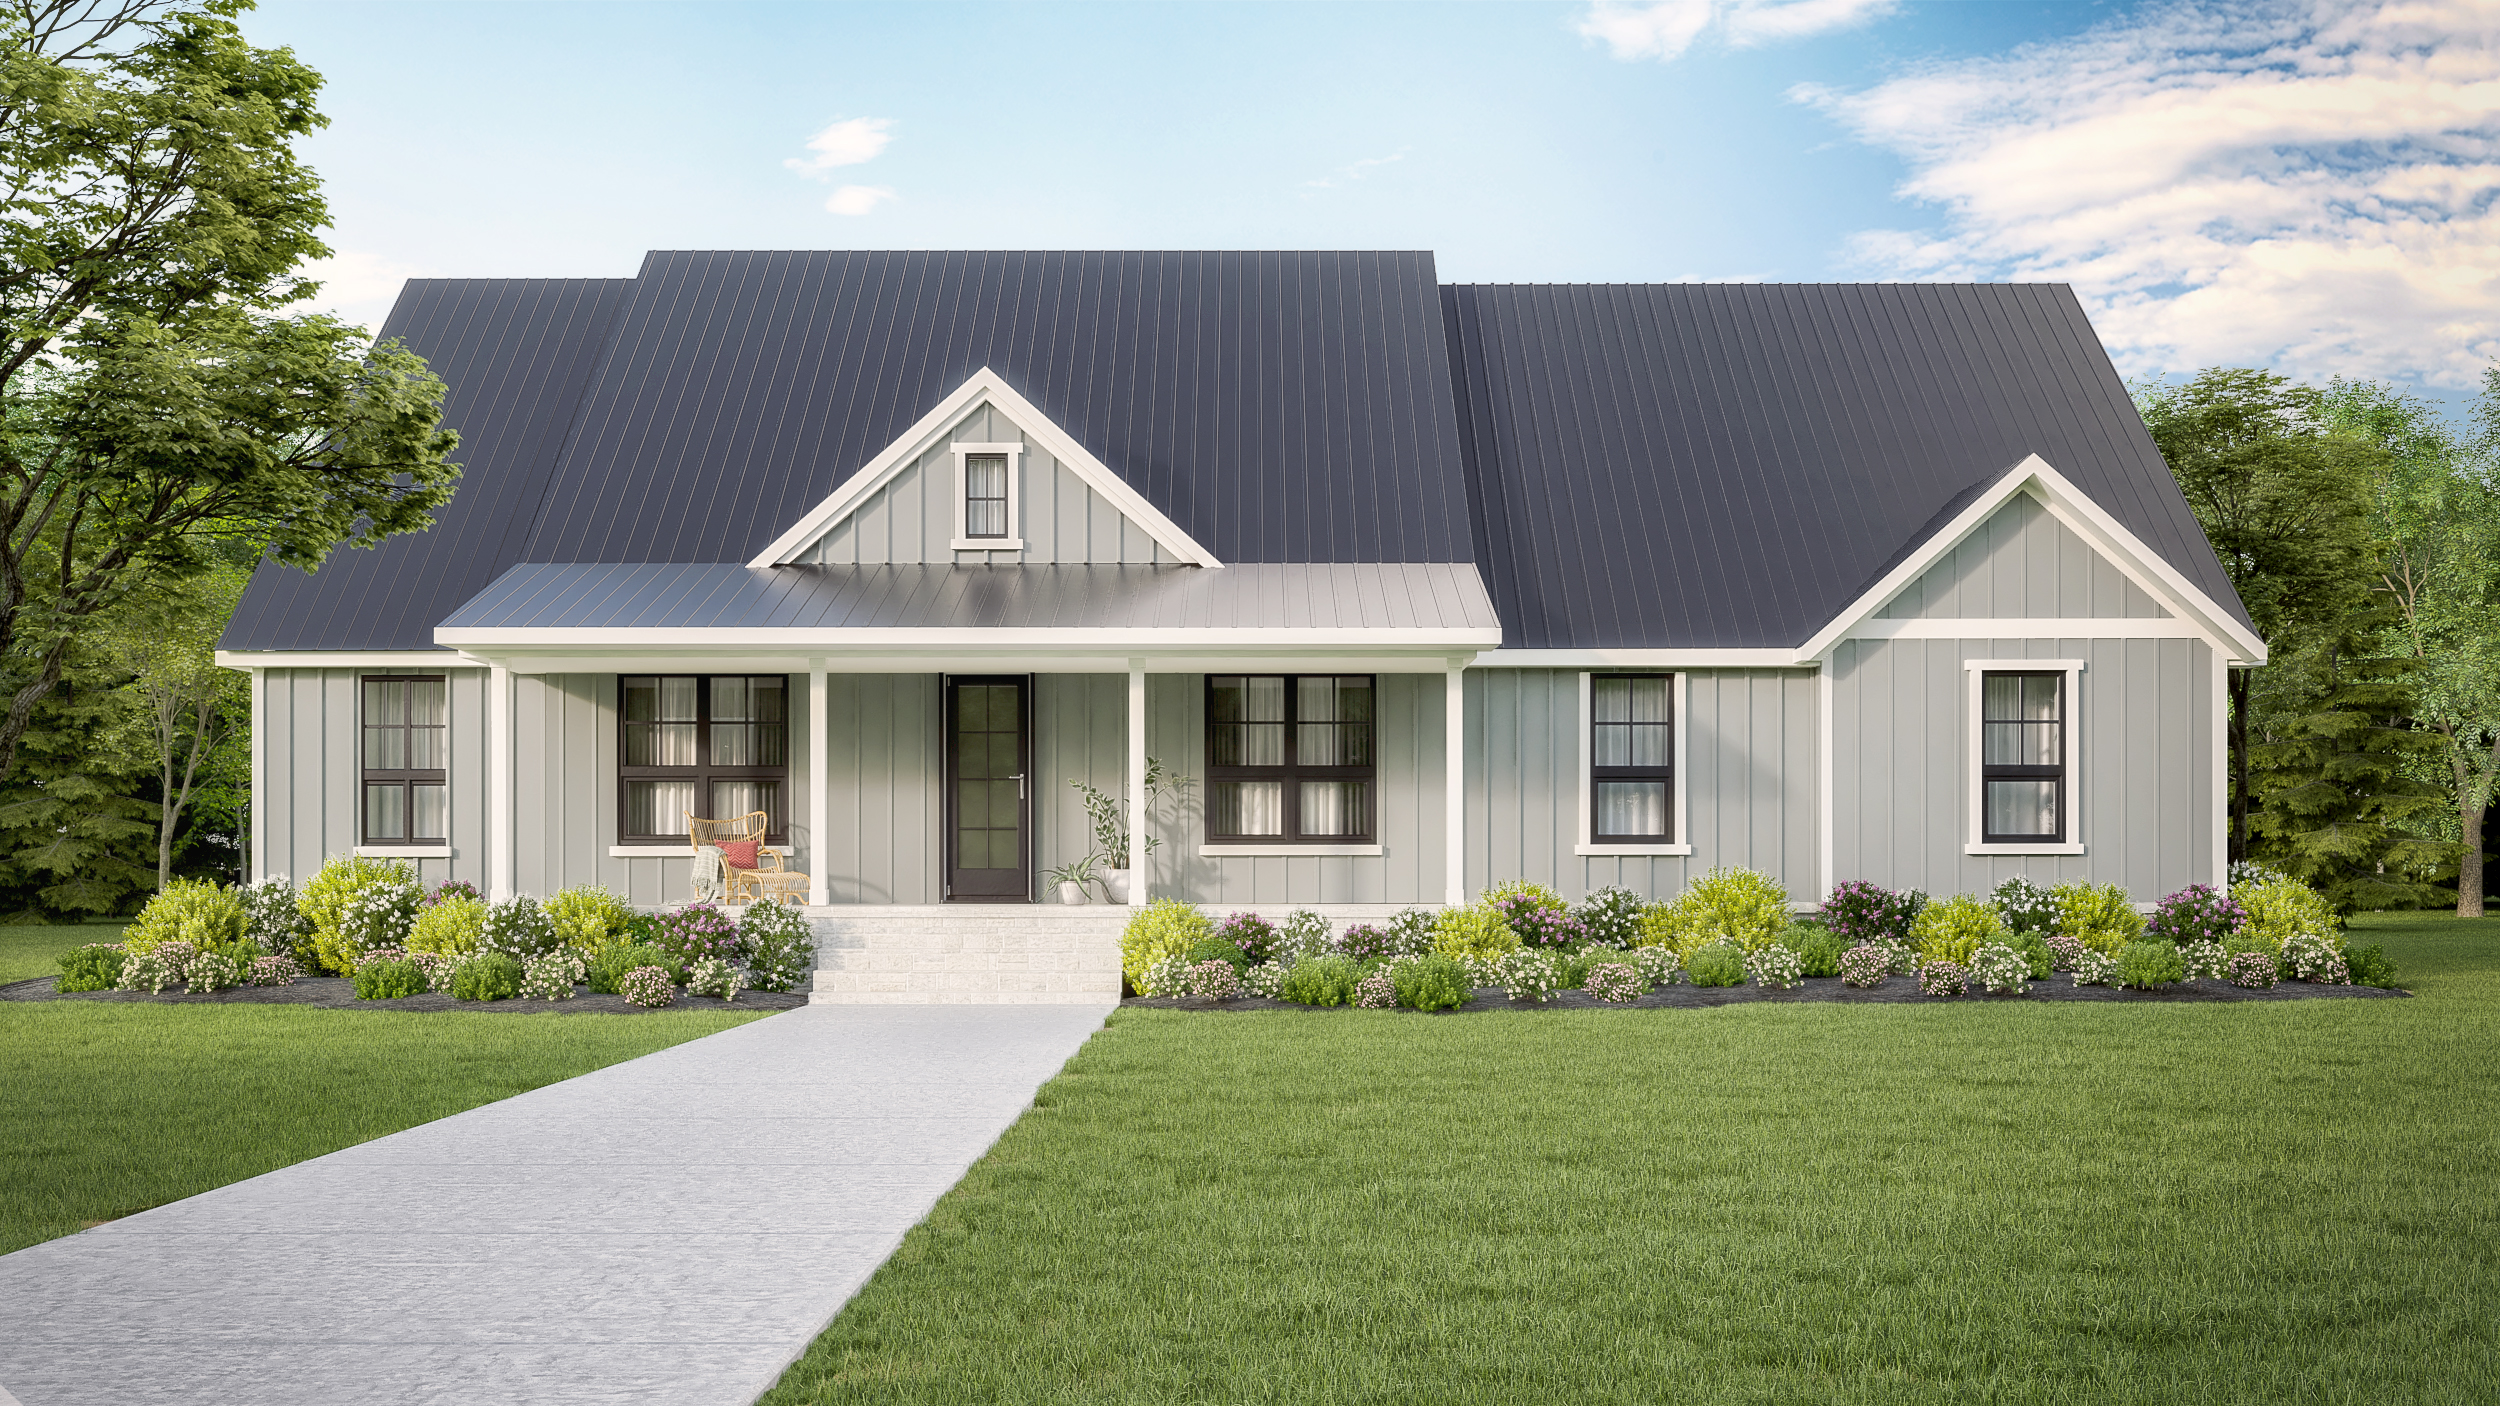 2,726 square feet    Beds: 4    Baths: 2.5    Introductory Pricing $409,450